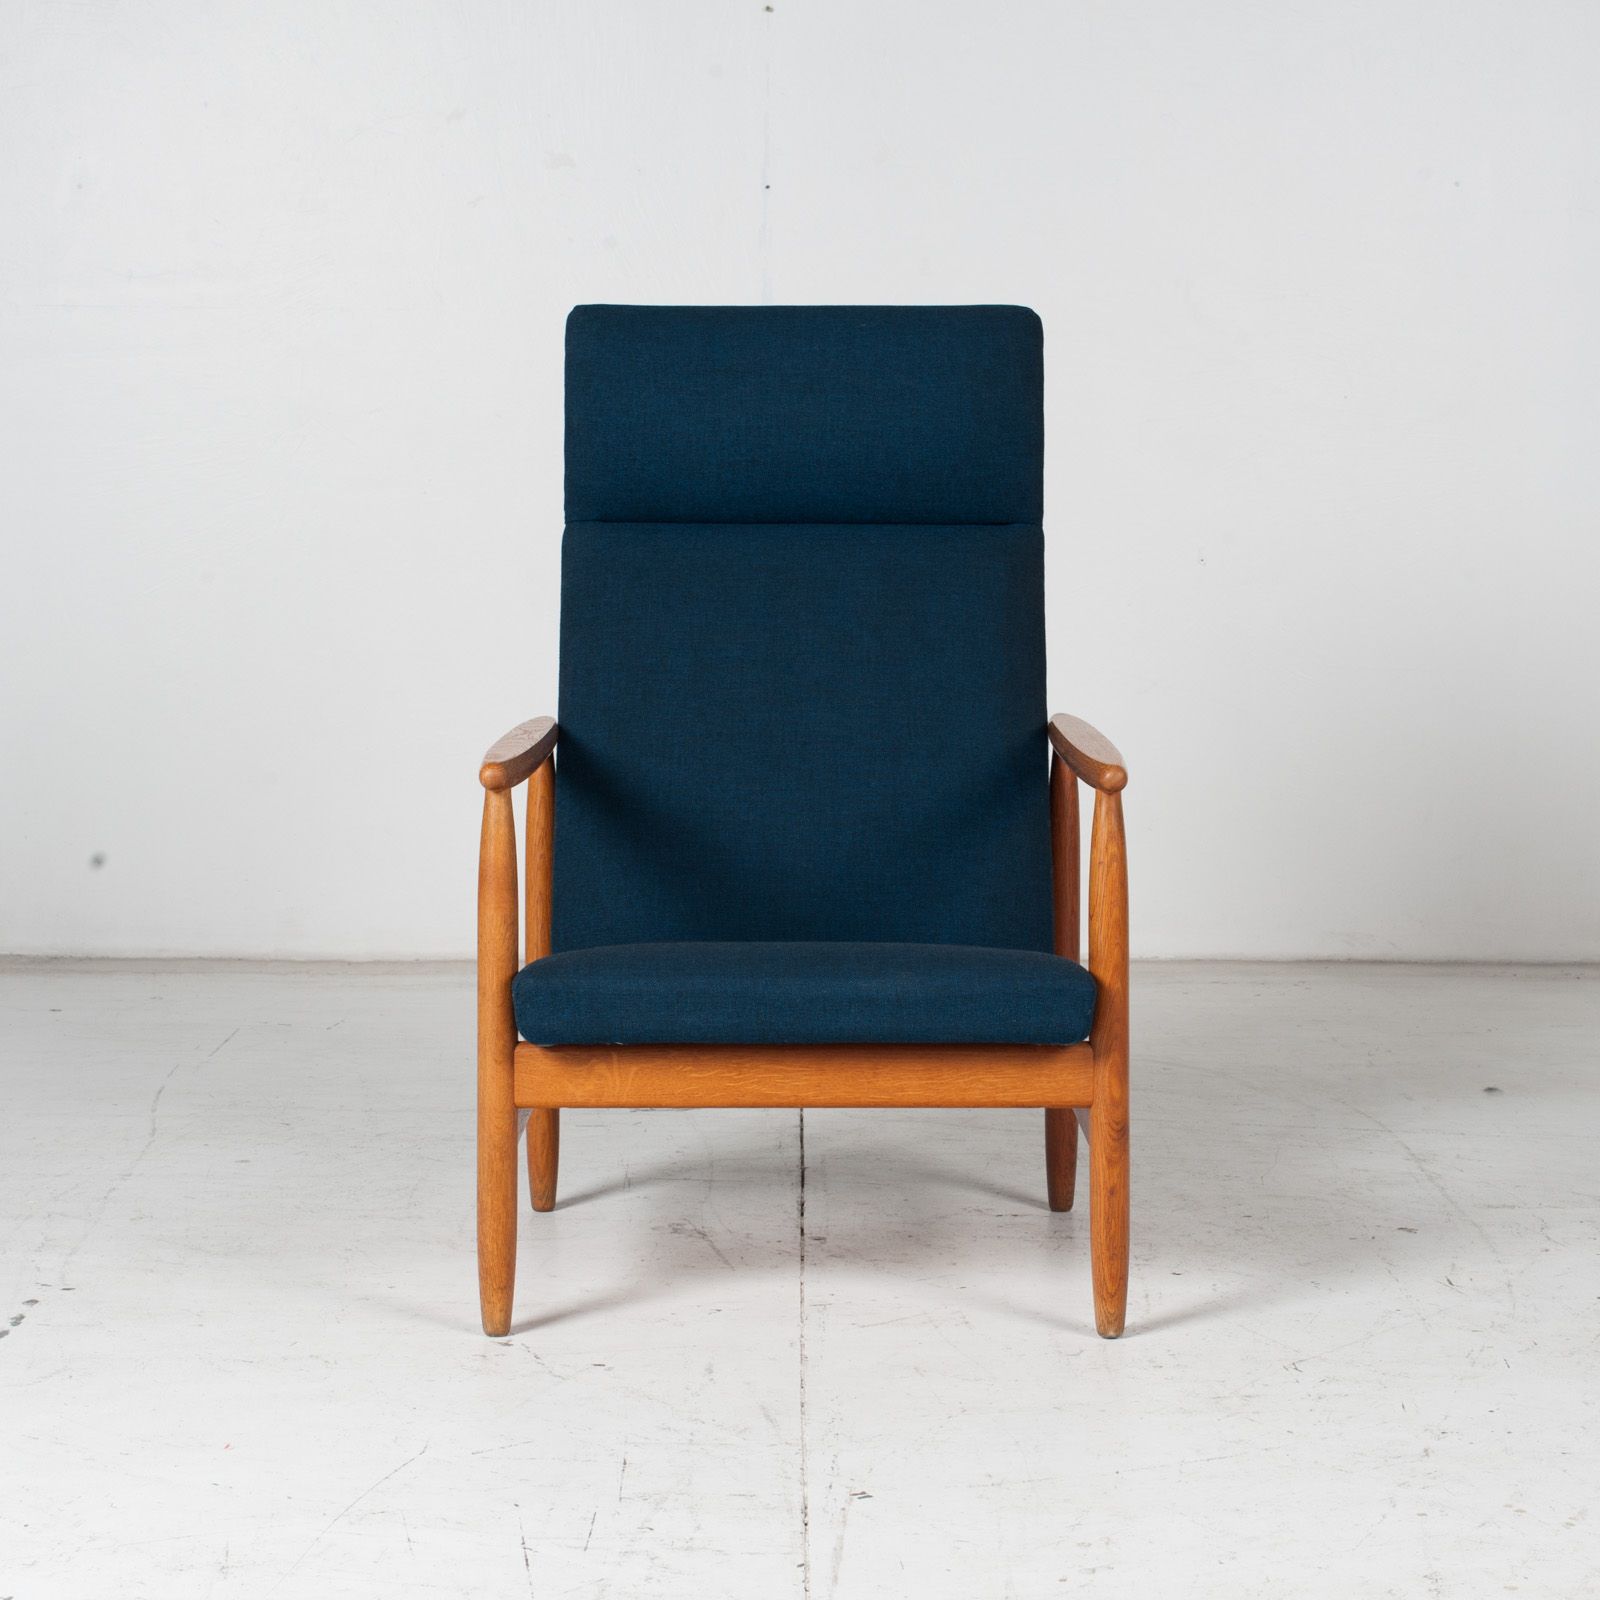 Armchair By Ejvind A. Johansson In Blue Upholstery, 1960s, Denmark1